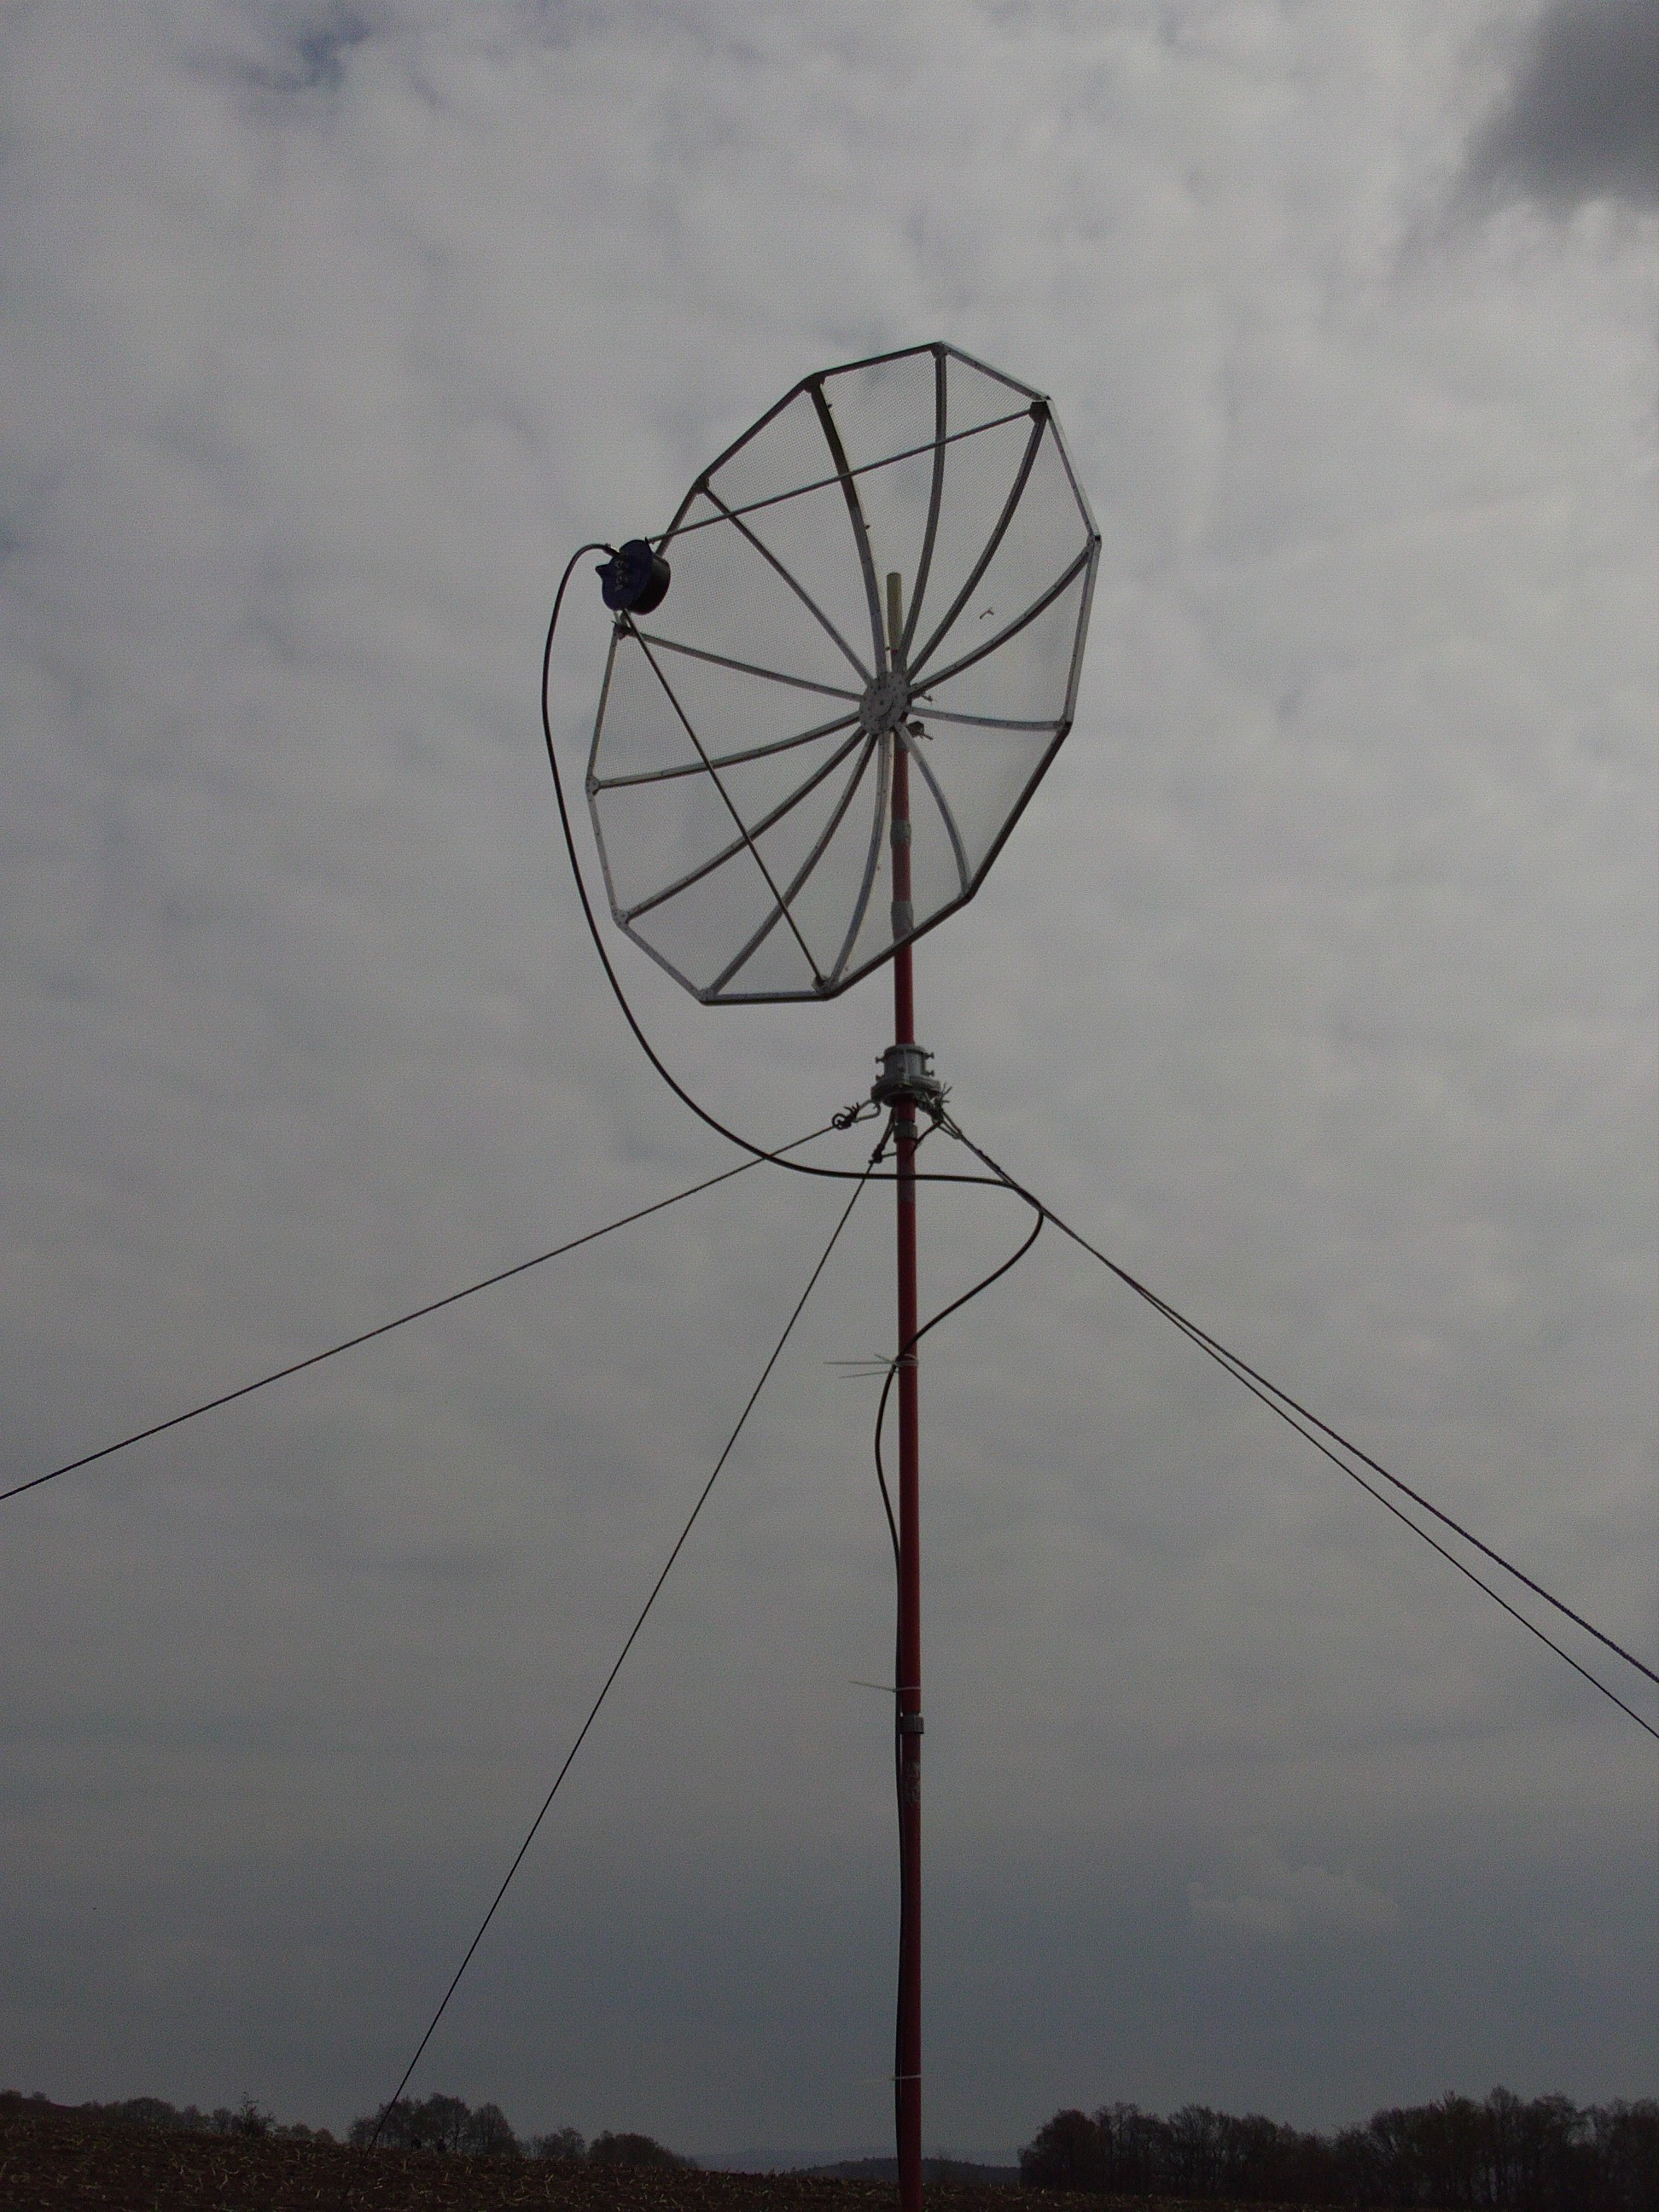 new 1.5m dish on portable tower